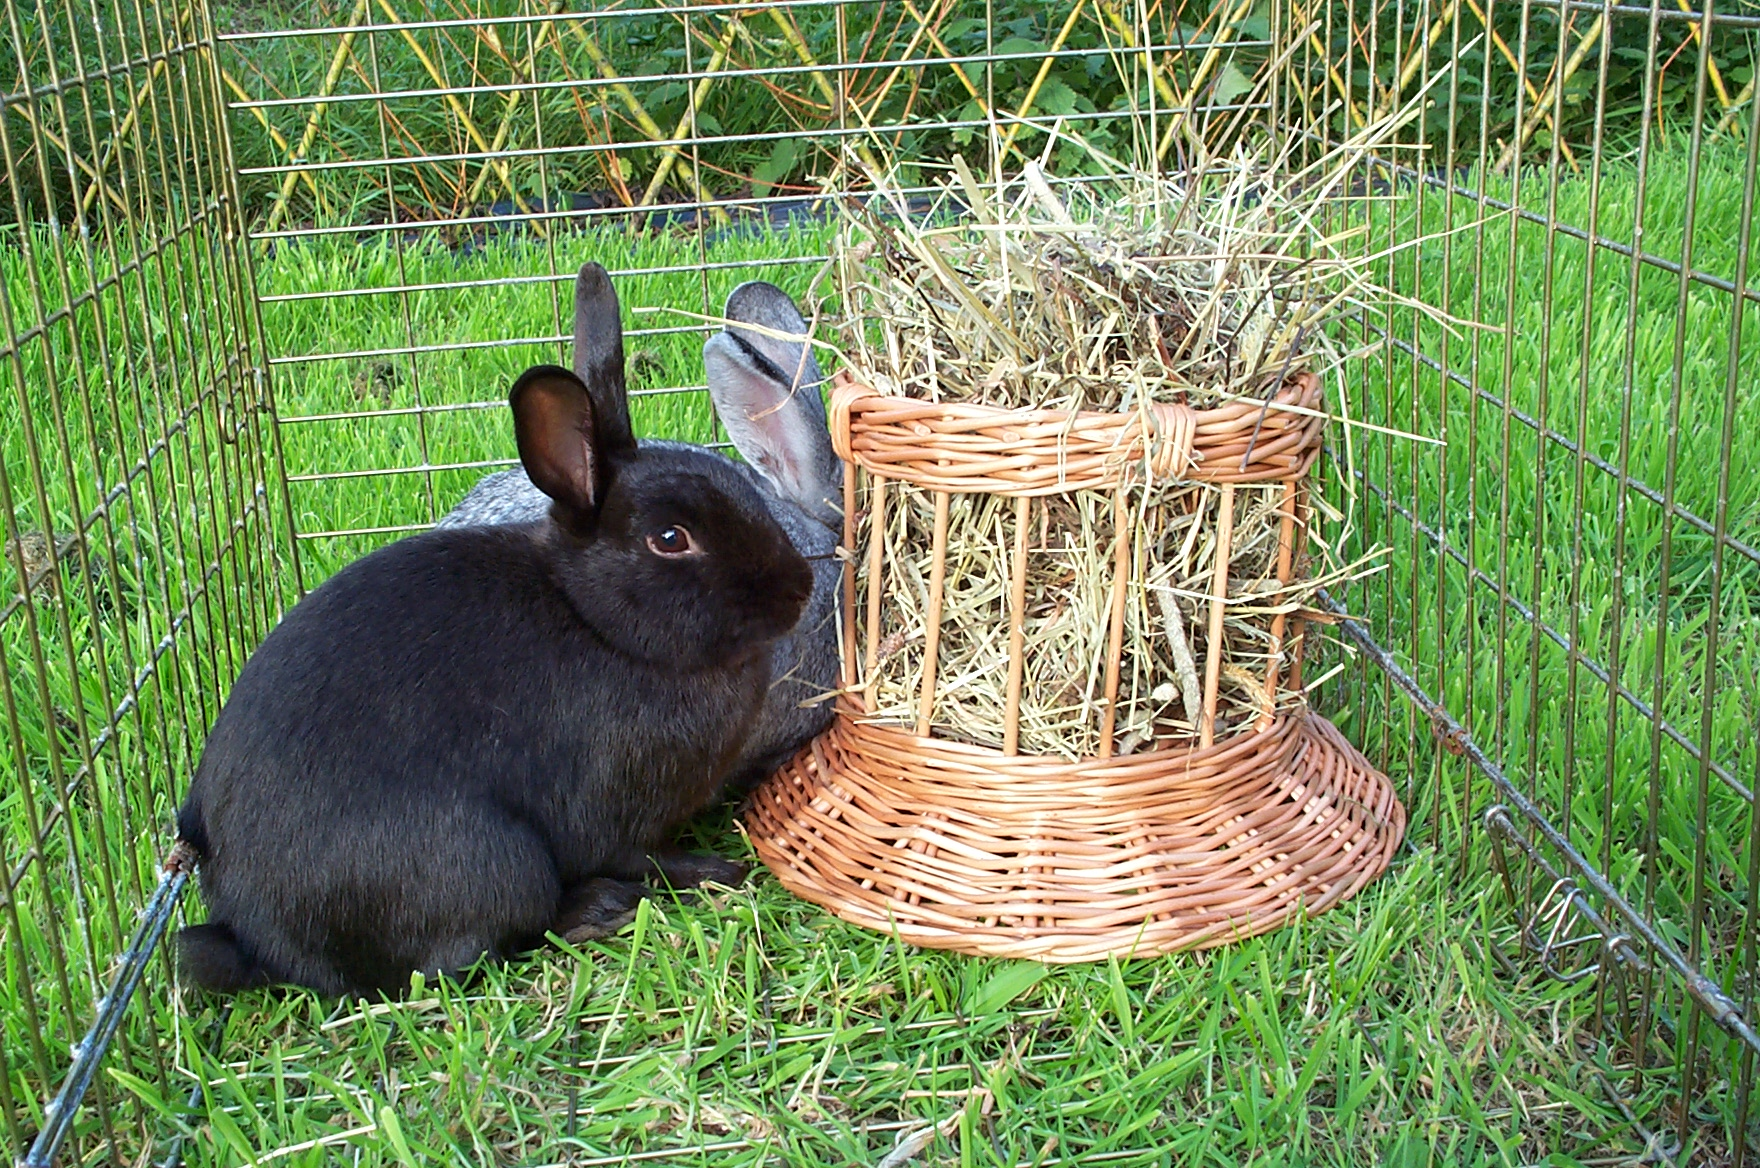 Which plant branches can be given to a rabbit to chew